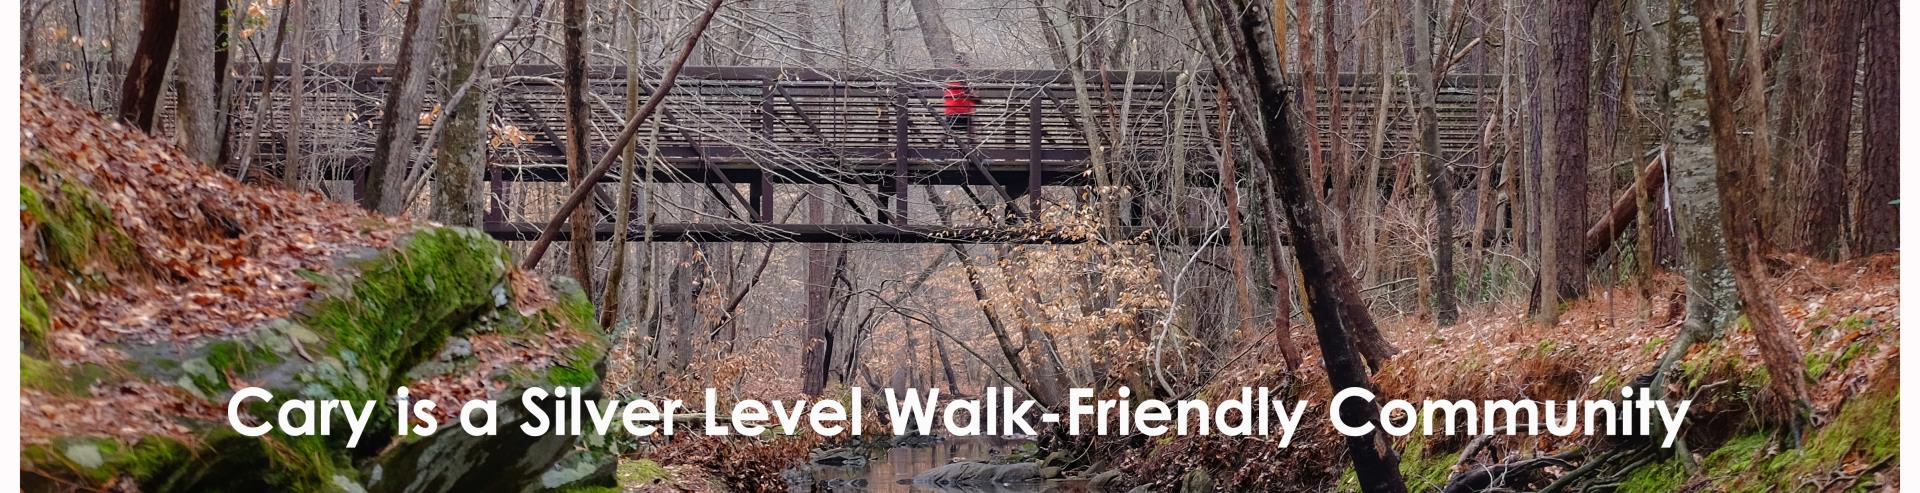 Cary is a Silver Level Walk-Friendly Community